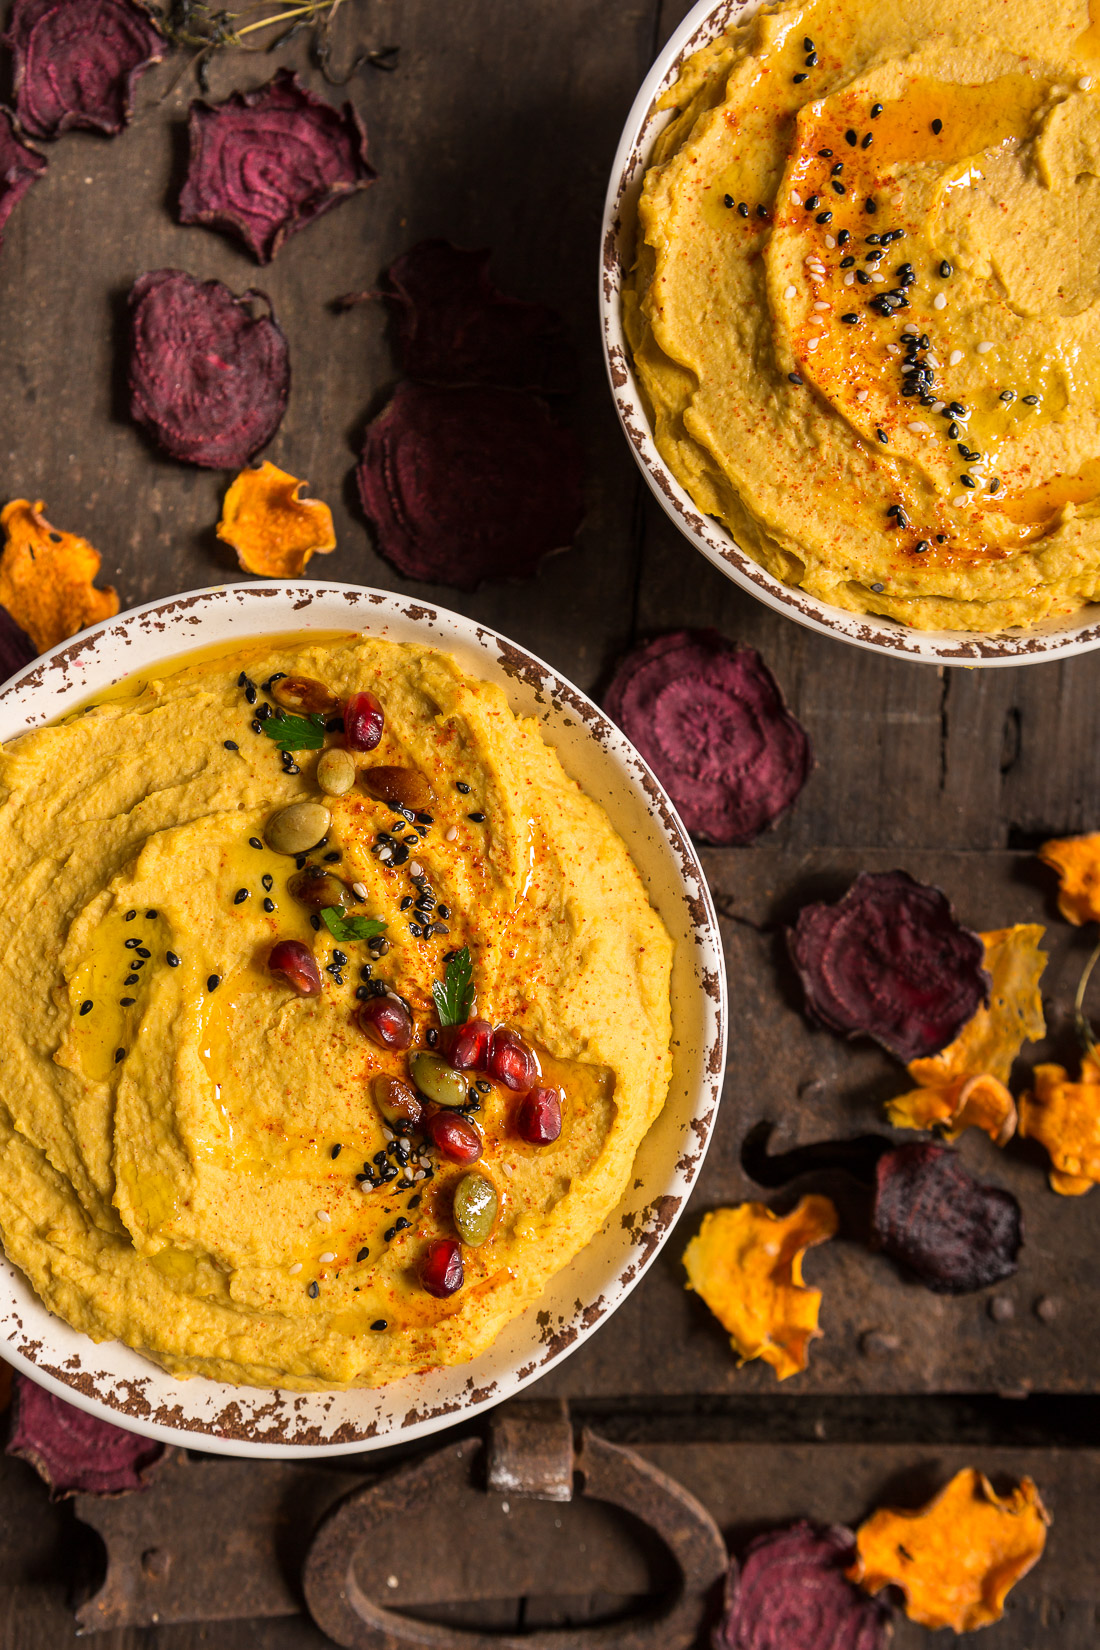 Hummus alla zucca con chips di barbabietola e patate dolci - PUMPKIN HUMMUS recipe with beet and sweet potato chips